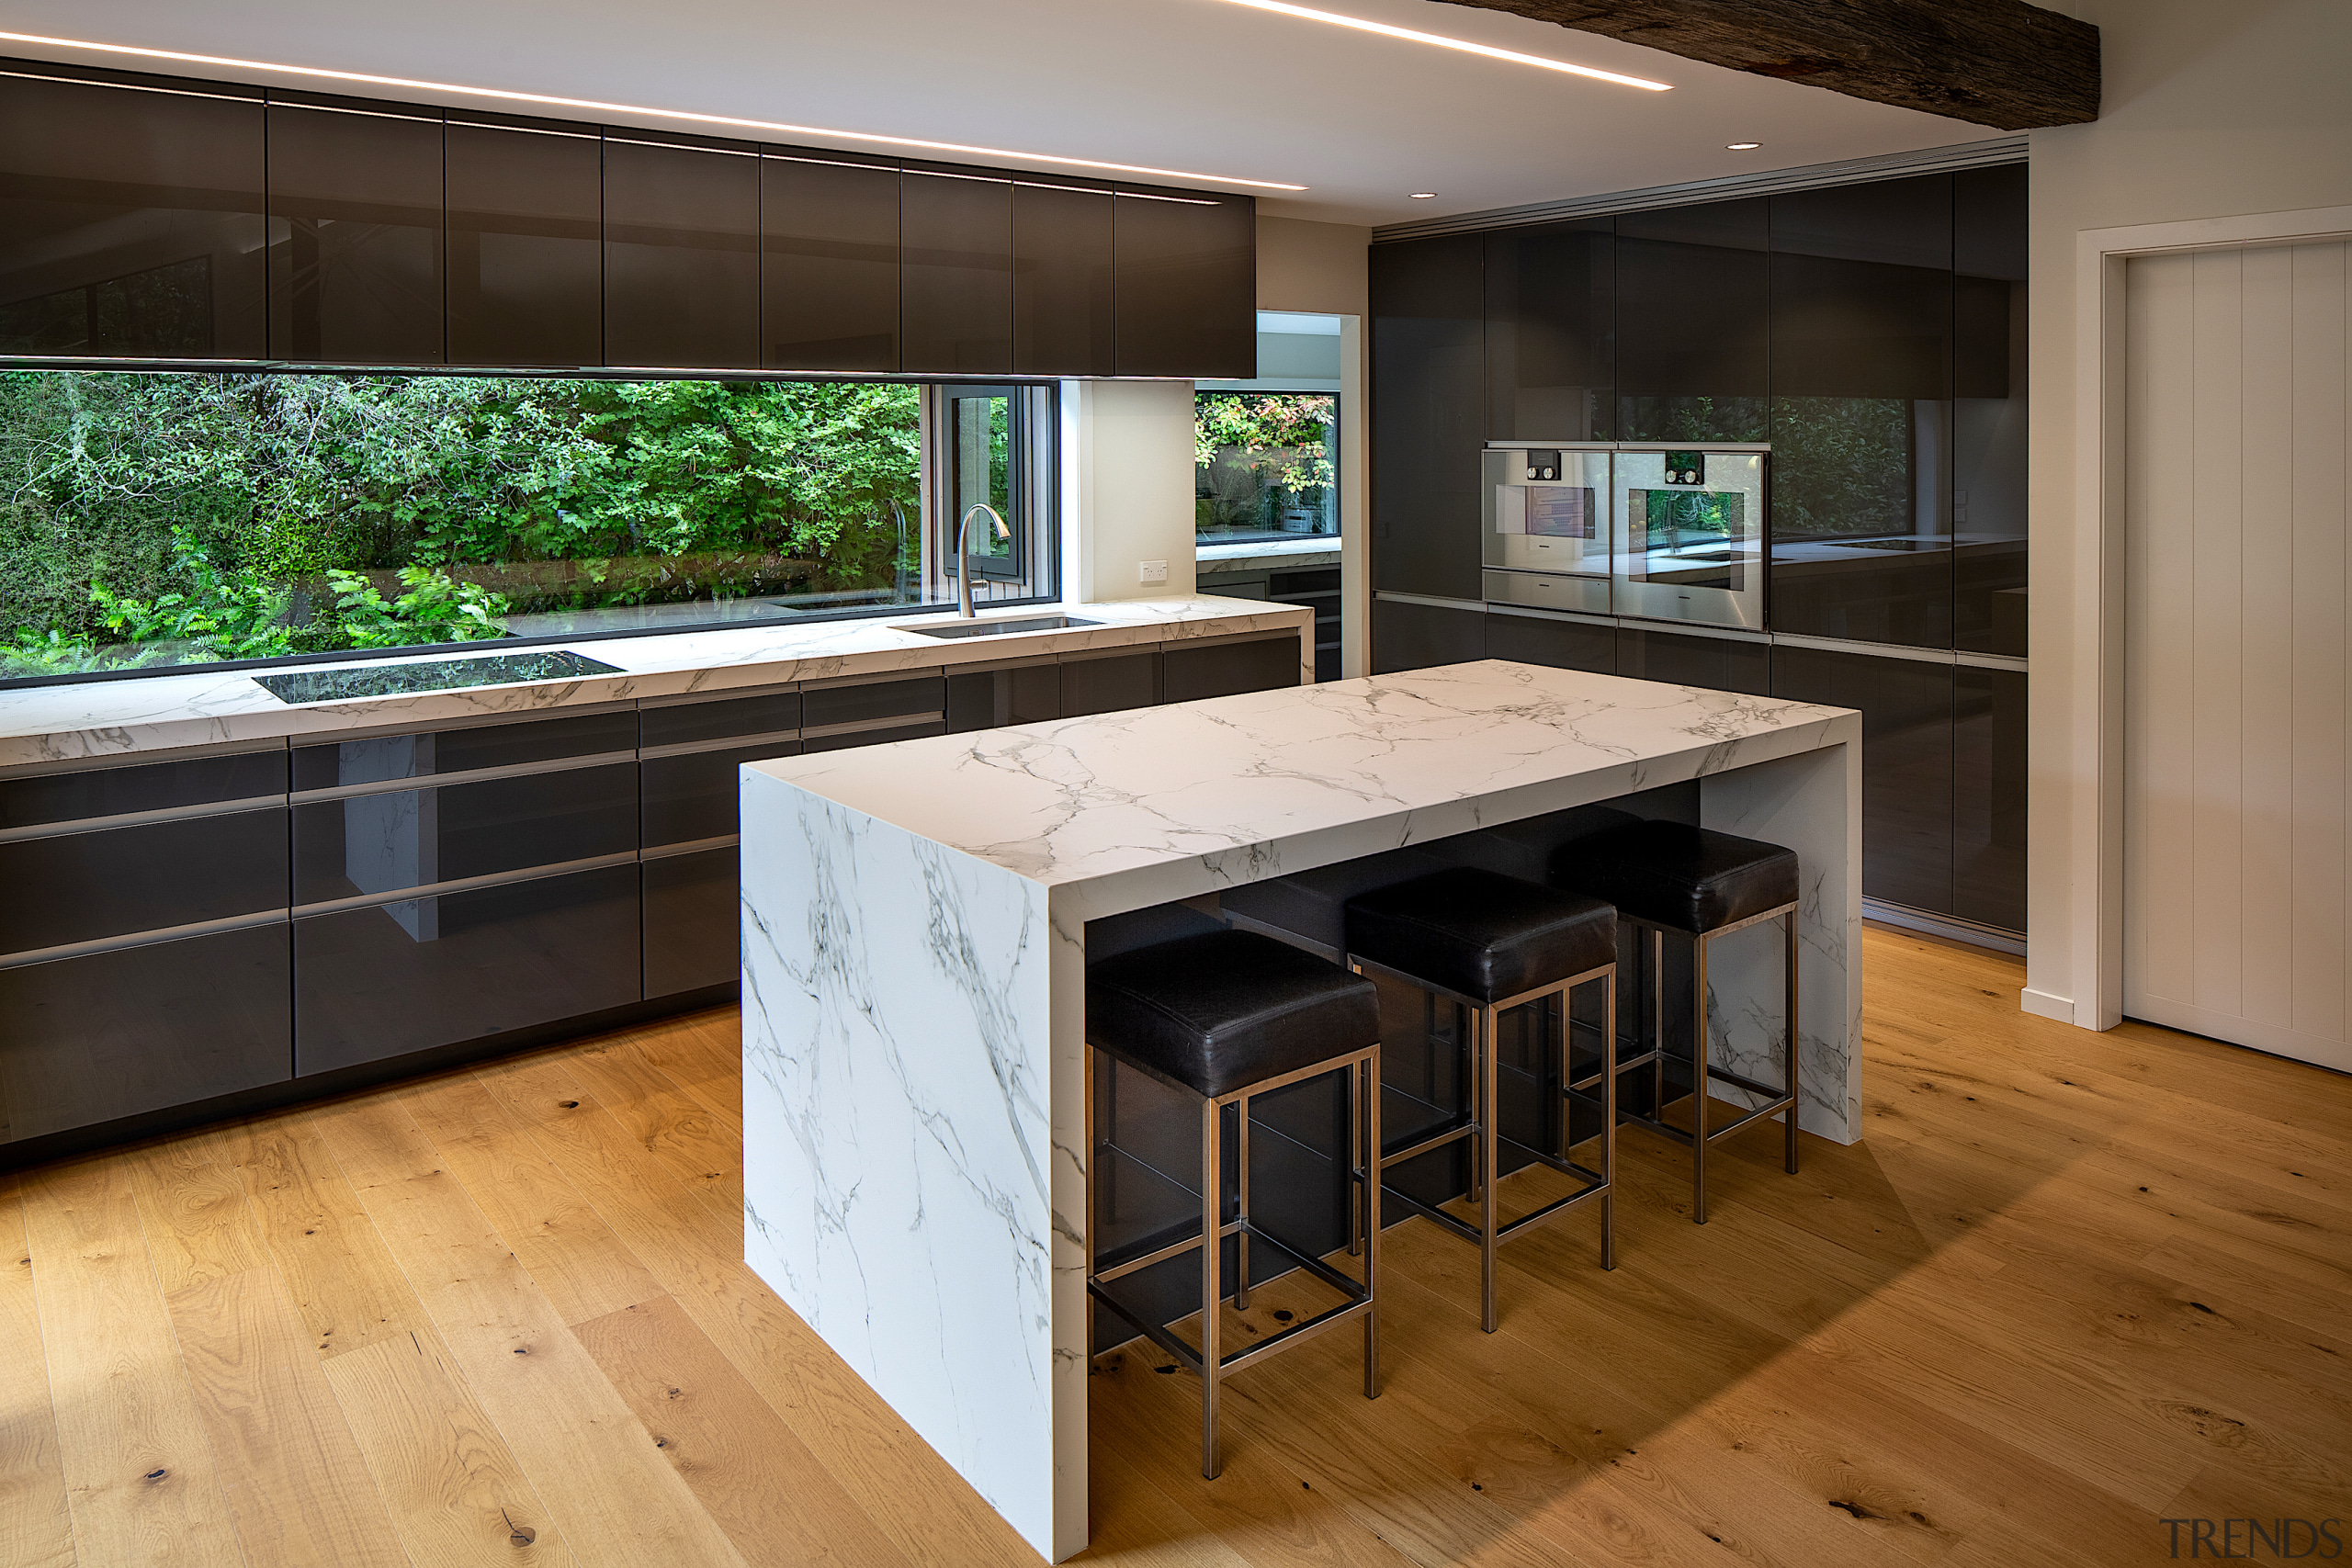 Much of the utility of this kitchen –